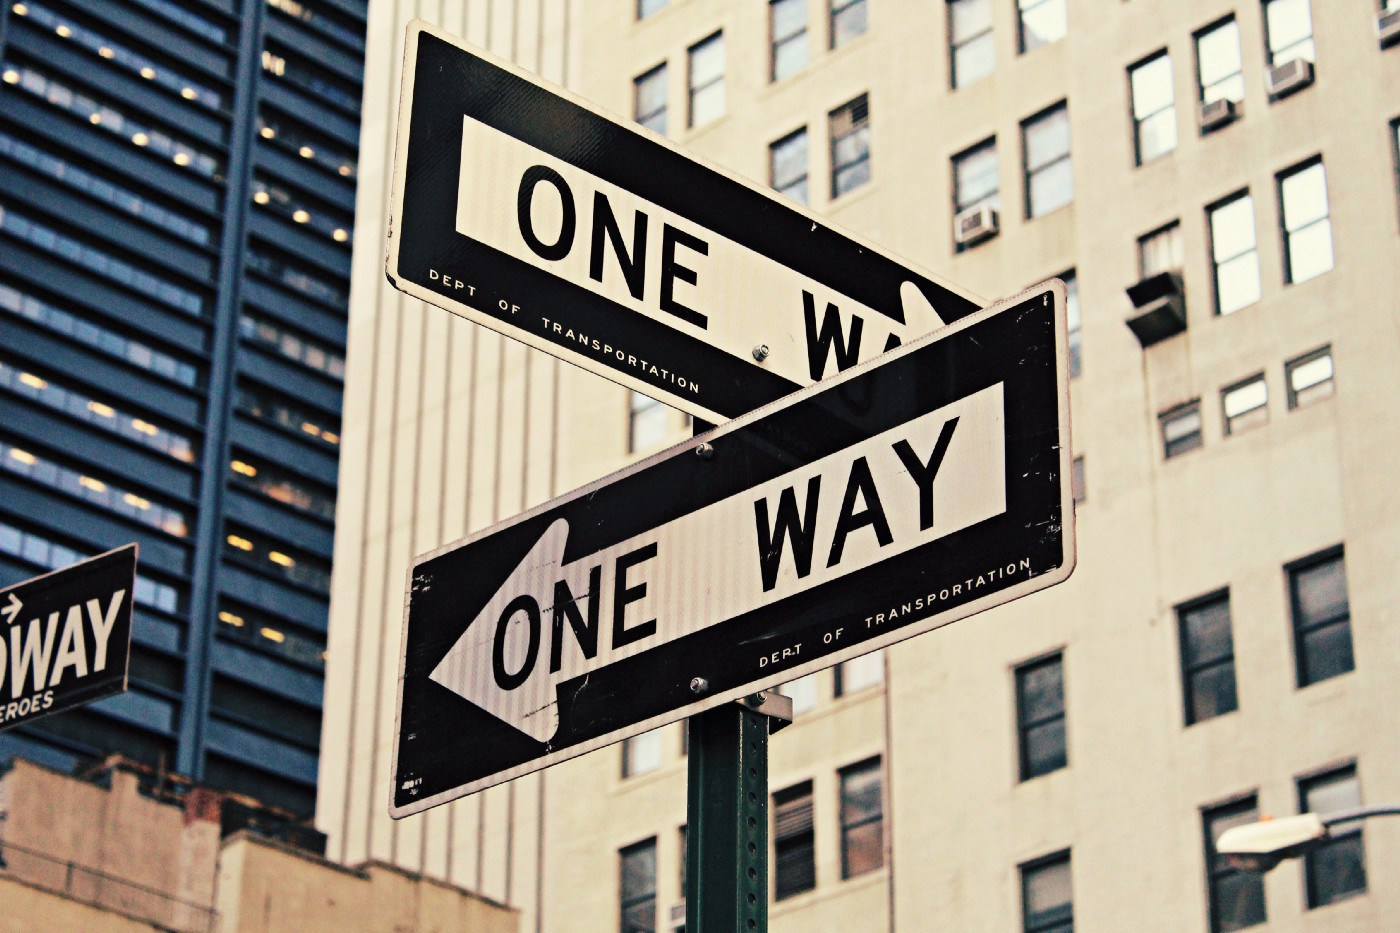 2 one way signs oppose each other